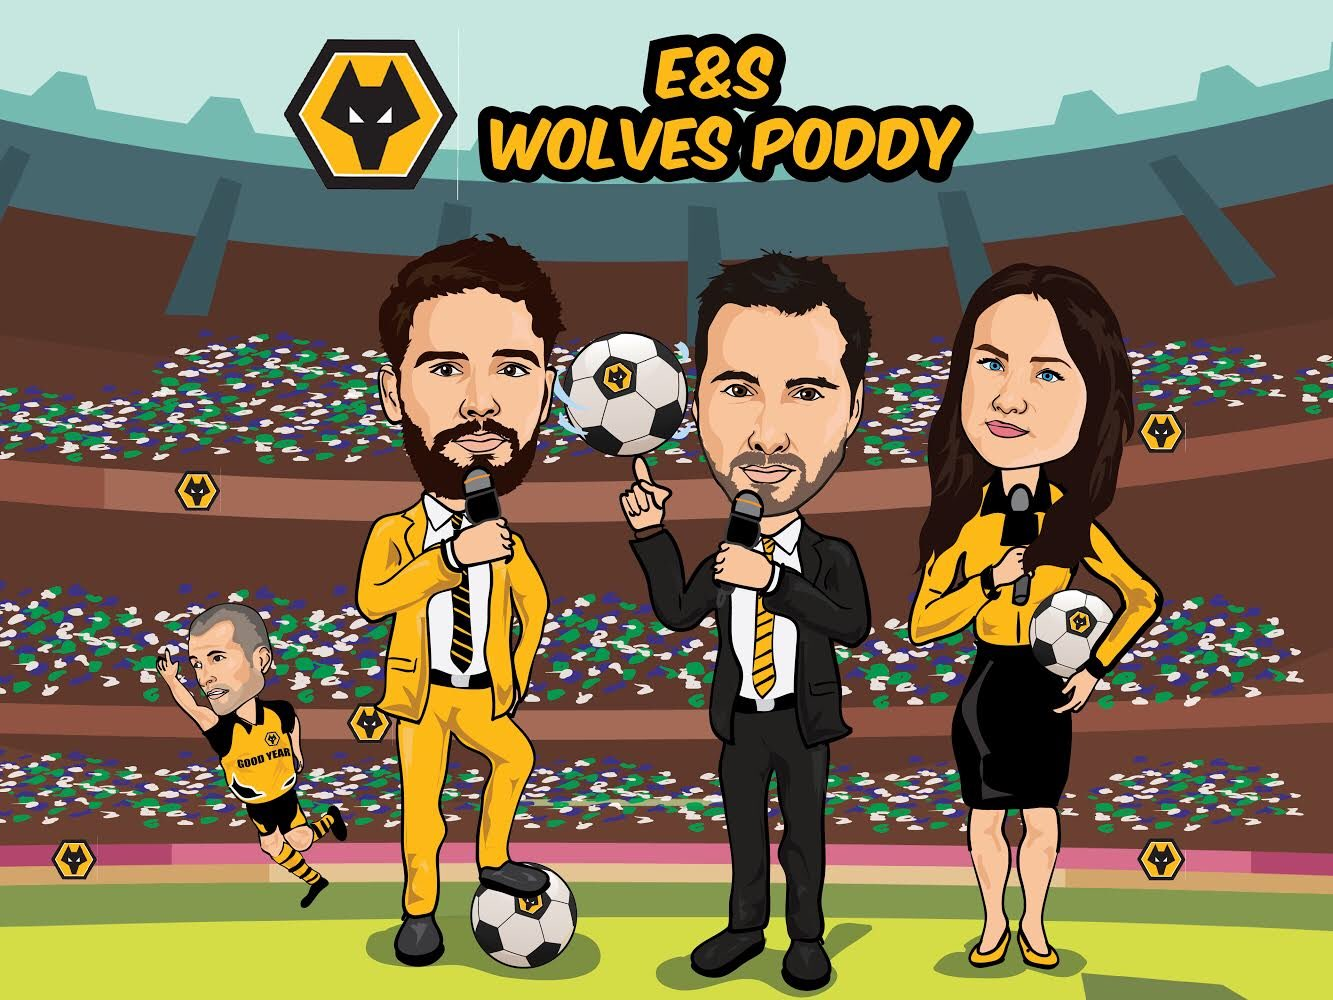 KLAXON 🎙  The @wolvespoddy returns THIS THURSDAY with a new look!   Judah 🤪 @rosieswarb 👩🏻 @JoeEdwards_Star 🧔🏻 & BULLY 🐺  Plus a host of special guests  Spread the news! We're back baby!   #wwfc https://t.co/SsW1lVEpsT